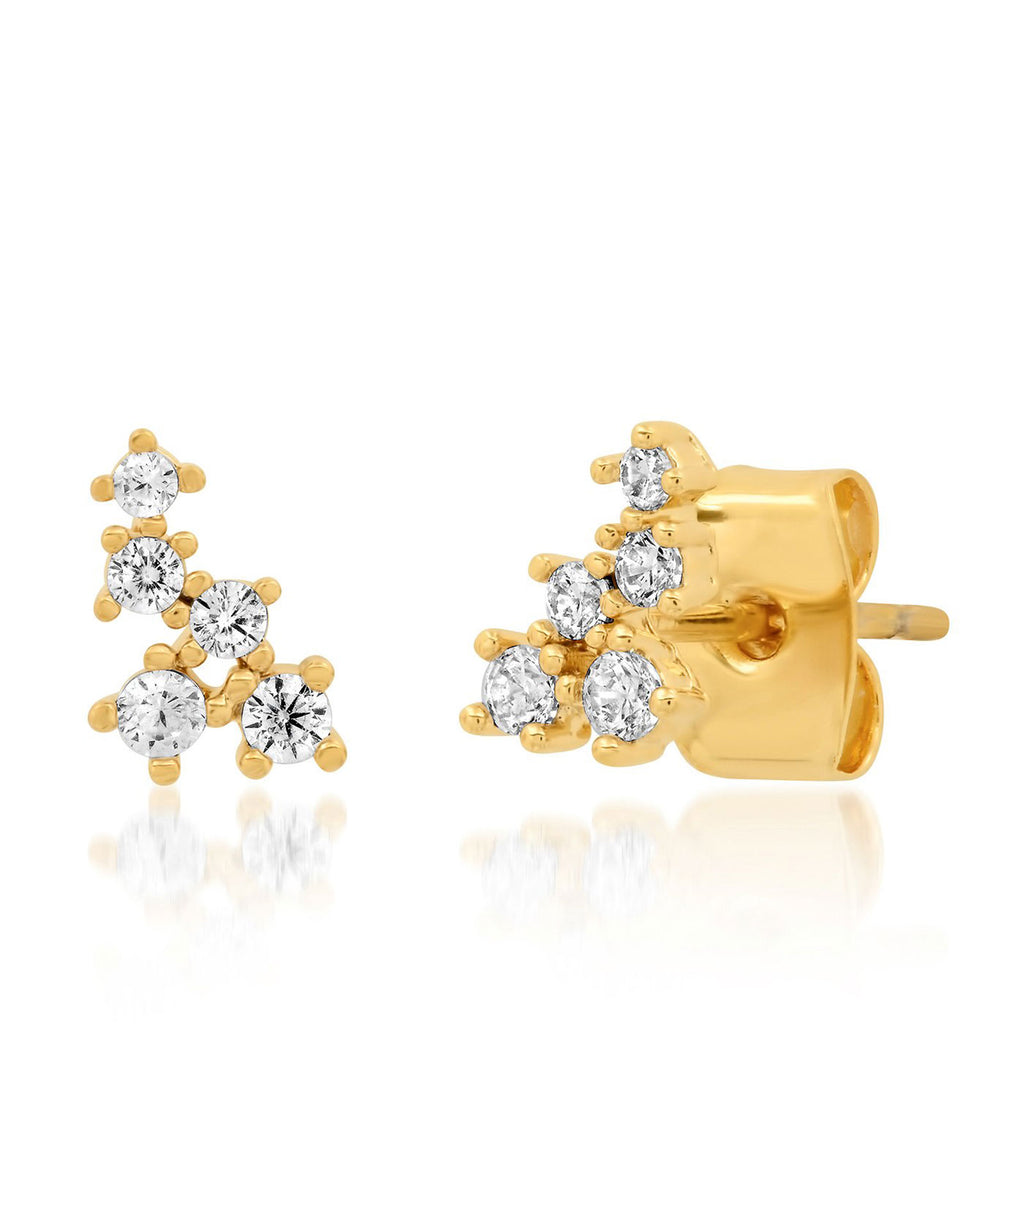 TAI Gold Five Cluster Stud Earrings